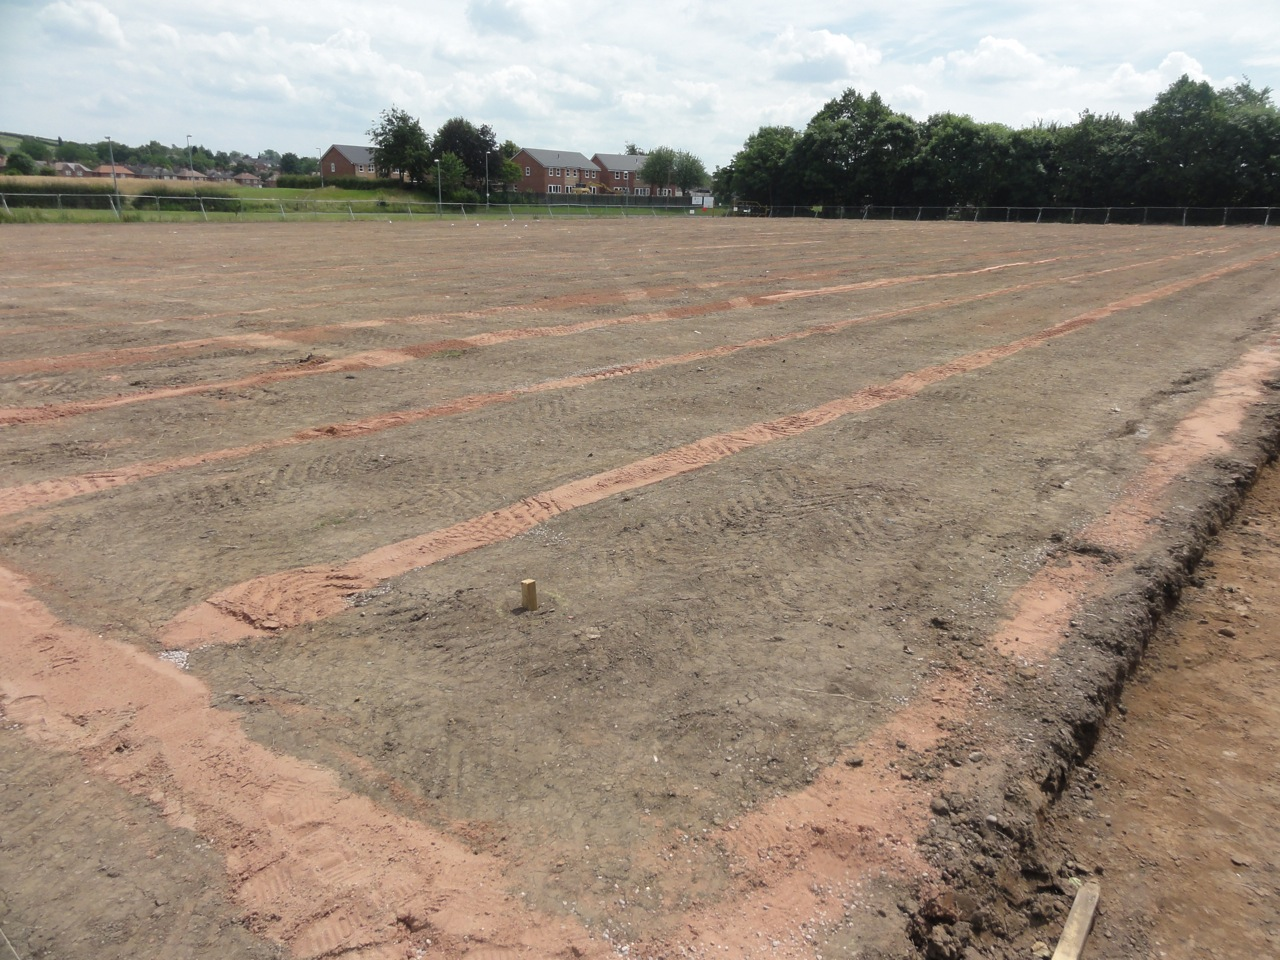 Completed Turfdry Drainage System installation on senior pitch with Hydraway Sportsdrain at 2.5m spacing.